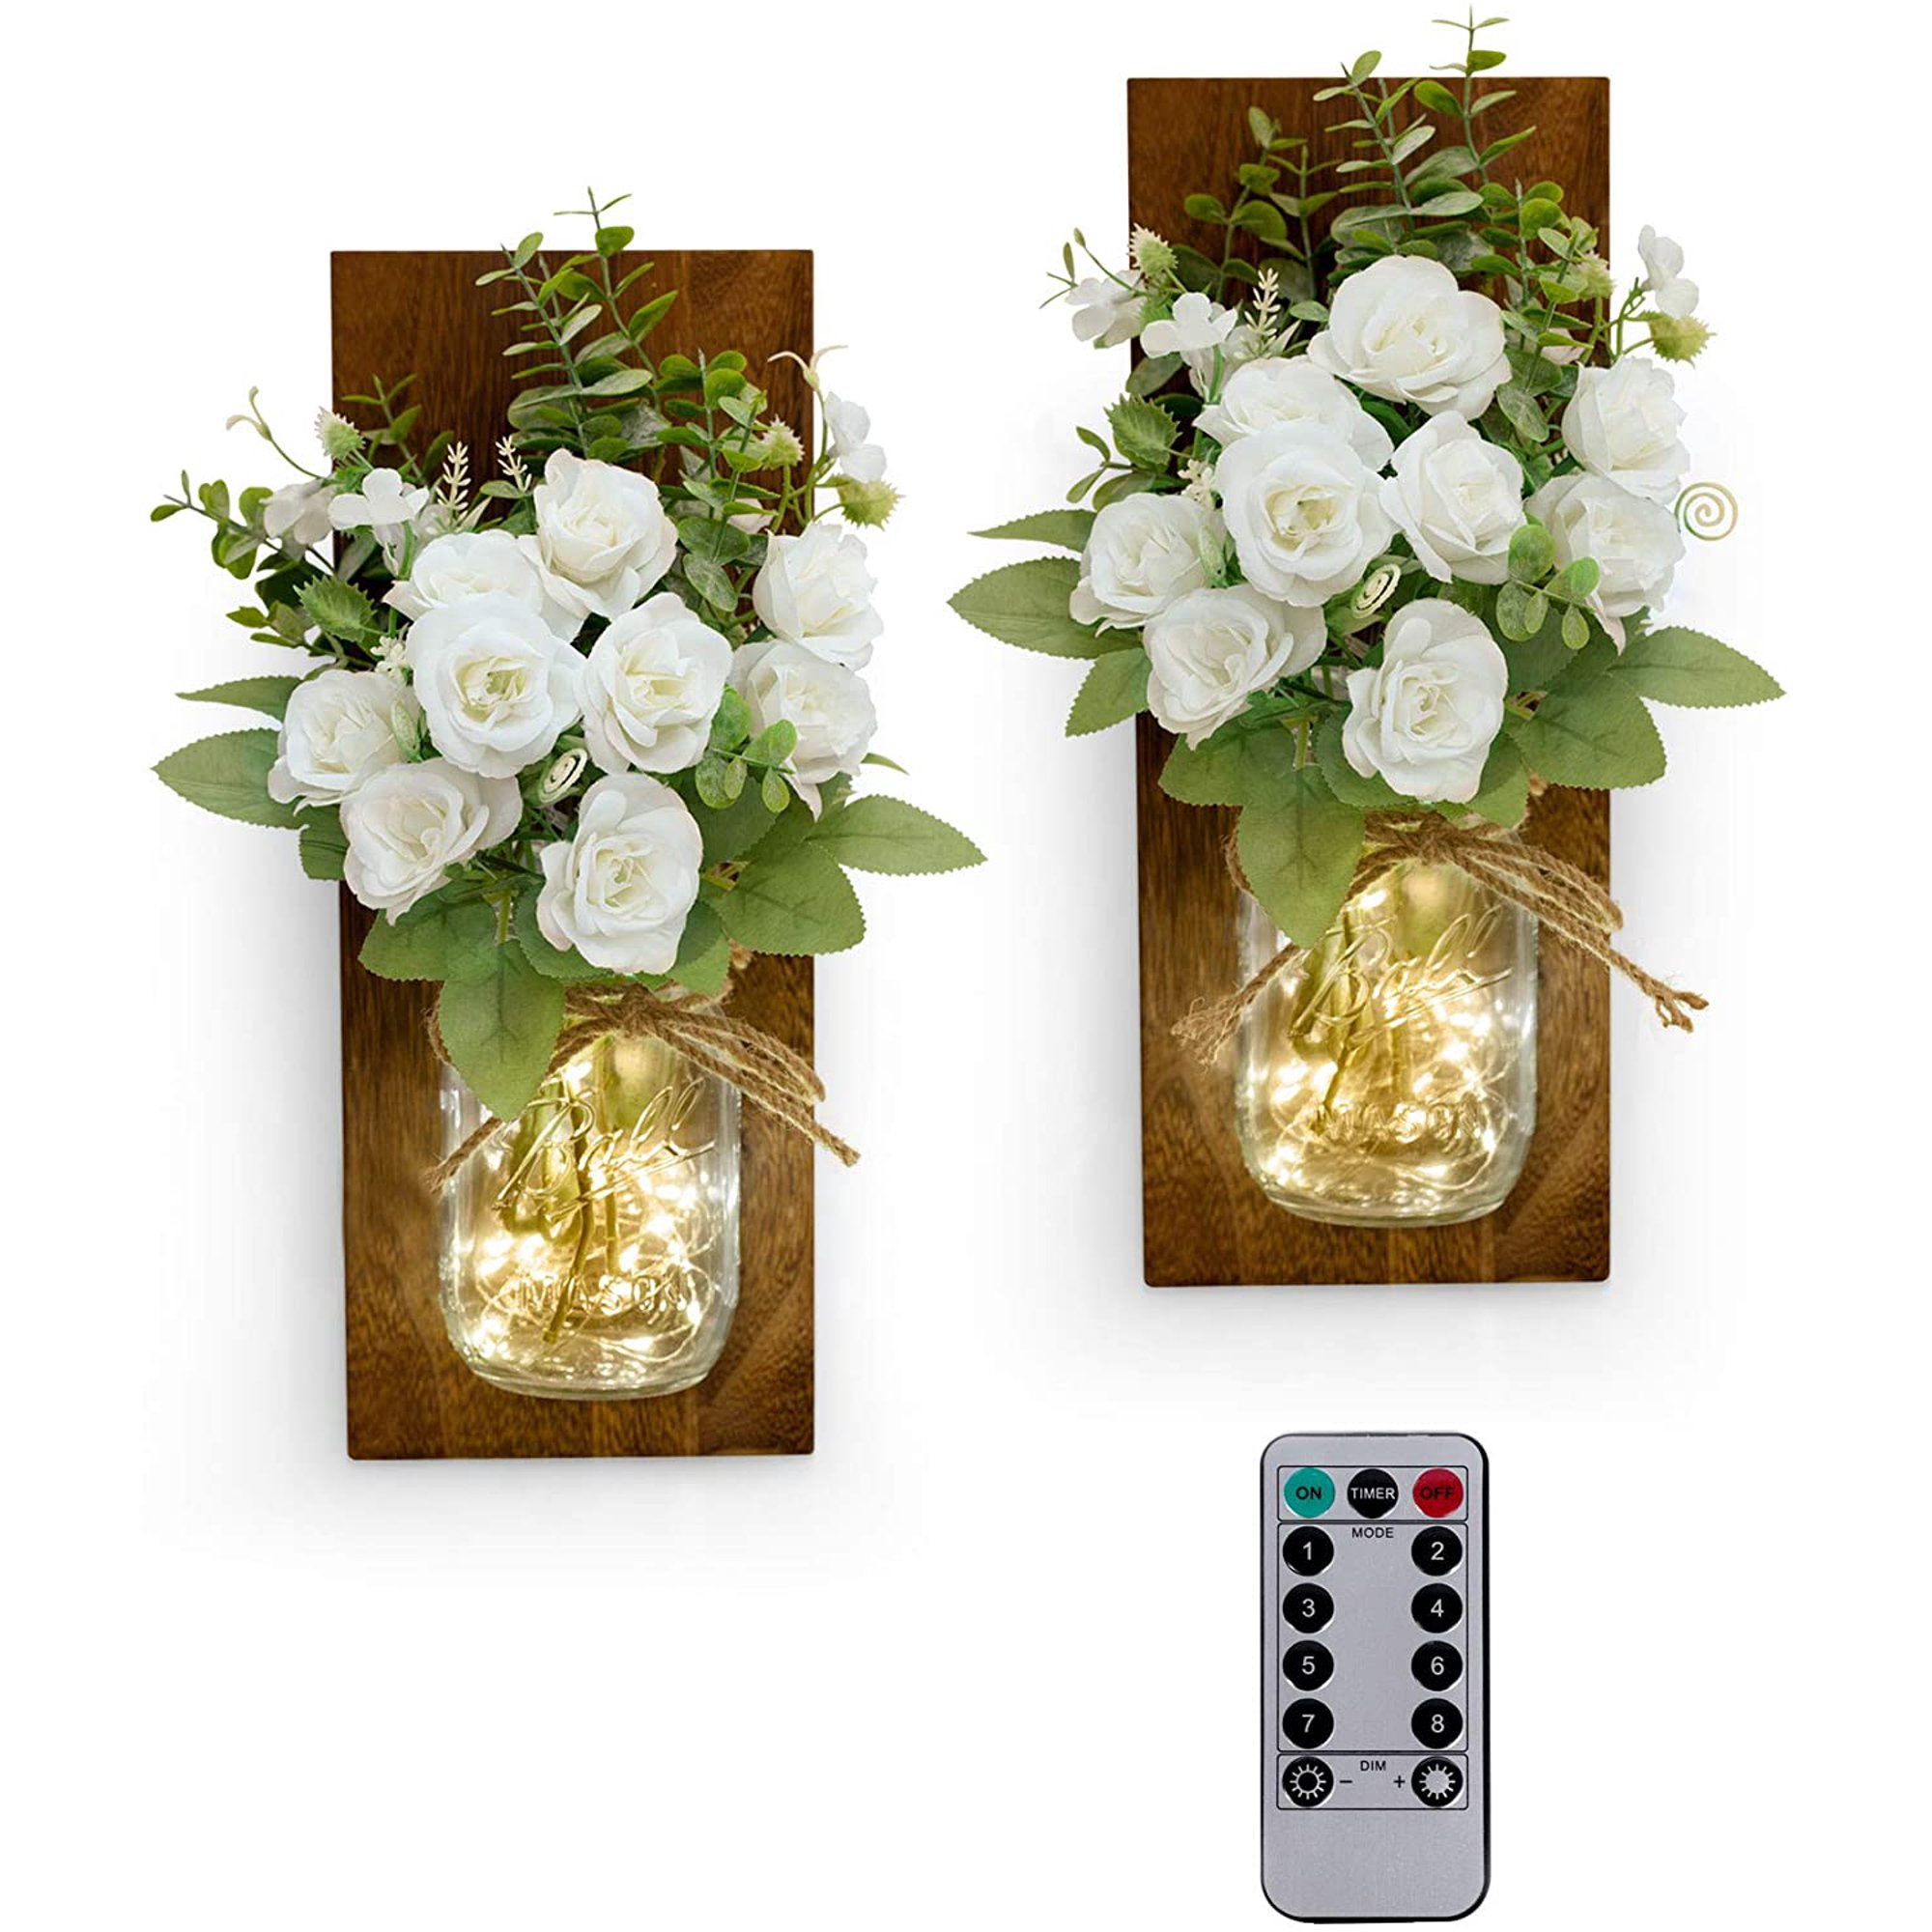 Gogeu Rustic Mason Jar Wall Sconce With String Led Lights Farmhouse Wall Decor For Bedroom Living Room Bathroom Two Remote Controls White Rose Bouquet Set Of 2 Walmart Canada